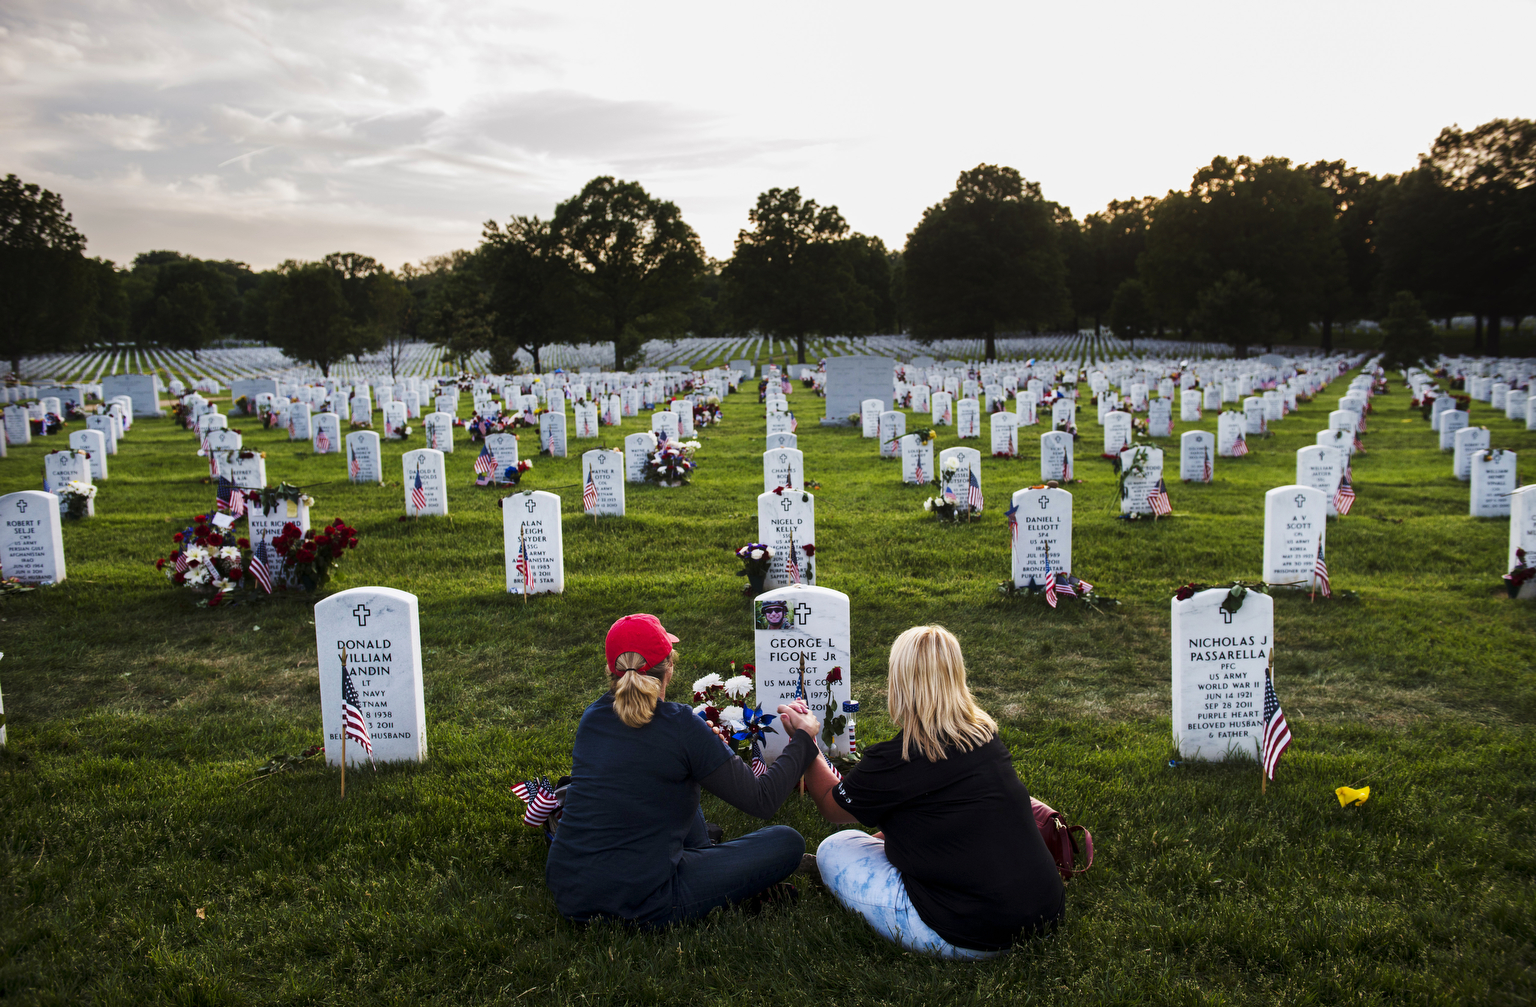 WASHINGTON, DC - MAY 26:  Debbra Figone and her sister, Anne Martin visit the grave site of Figone's son, Gunnery Sgt. George L. Figone Jr. on Memorial Day at Arlington National Cemetery on Monday, May 26, 2014 in Washington, DC. {quote}They called him gorgeous George,{quote} said Figone of her son who died at the age of 32 due to complications after being shot by friendly fire in Afghanistan in 2010.  Figone makes an annual pilgrimage to Arlington from her home in Northern Stockton, CA, visiting for five days over the memorial day weekend as part of the TAPS program. {quote} I come here to be with people that understand.  They don't need something to remind them because we live it every day,{quote} she said. (Photo by Amanda Voisard/For the Washington Post)